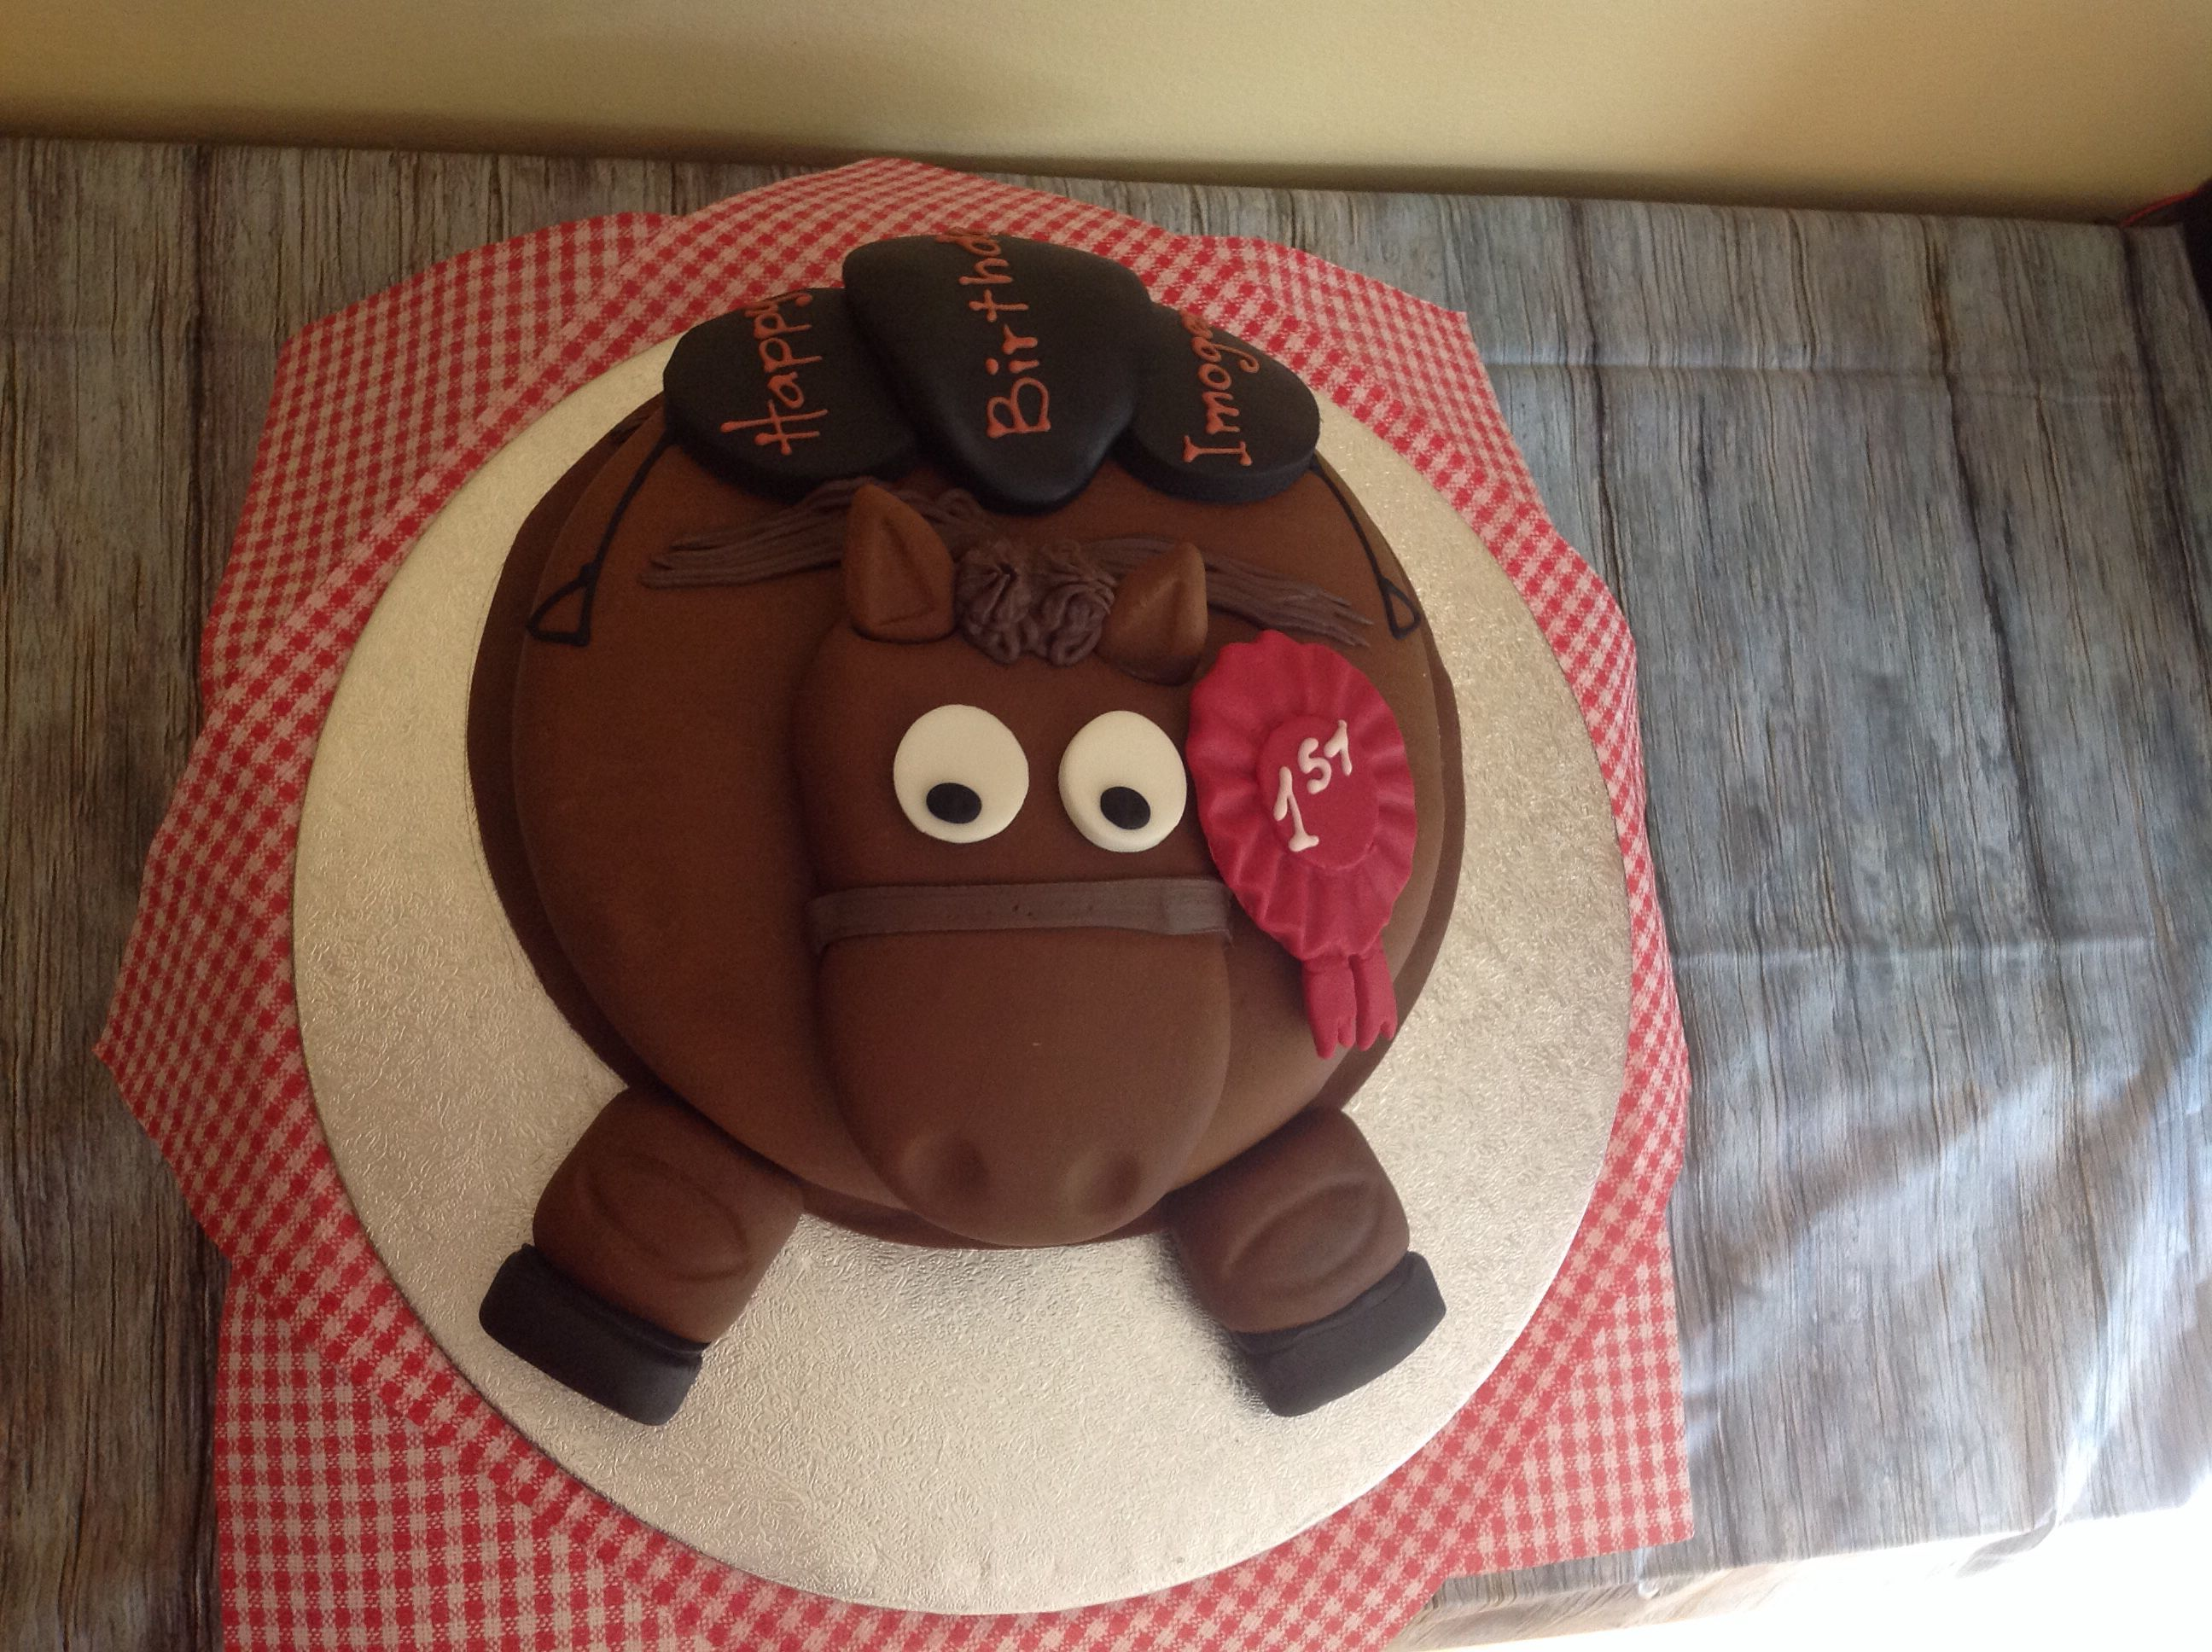 Fantastic Sparky The Pony Birthday Cake To Order From Waitrose Only GBP25